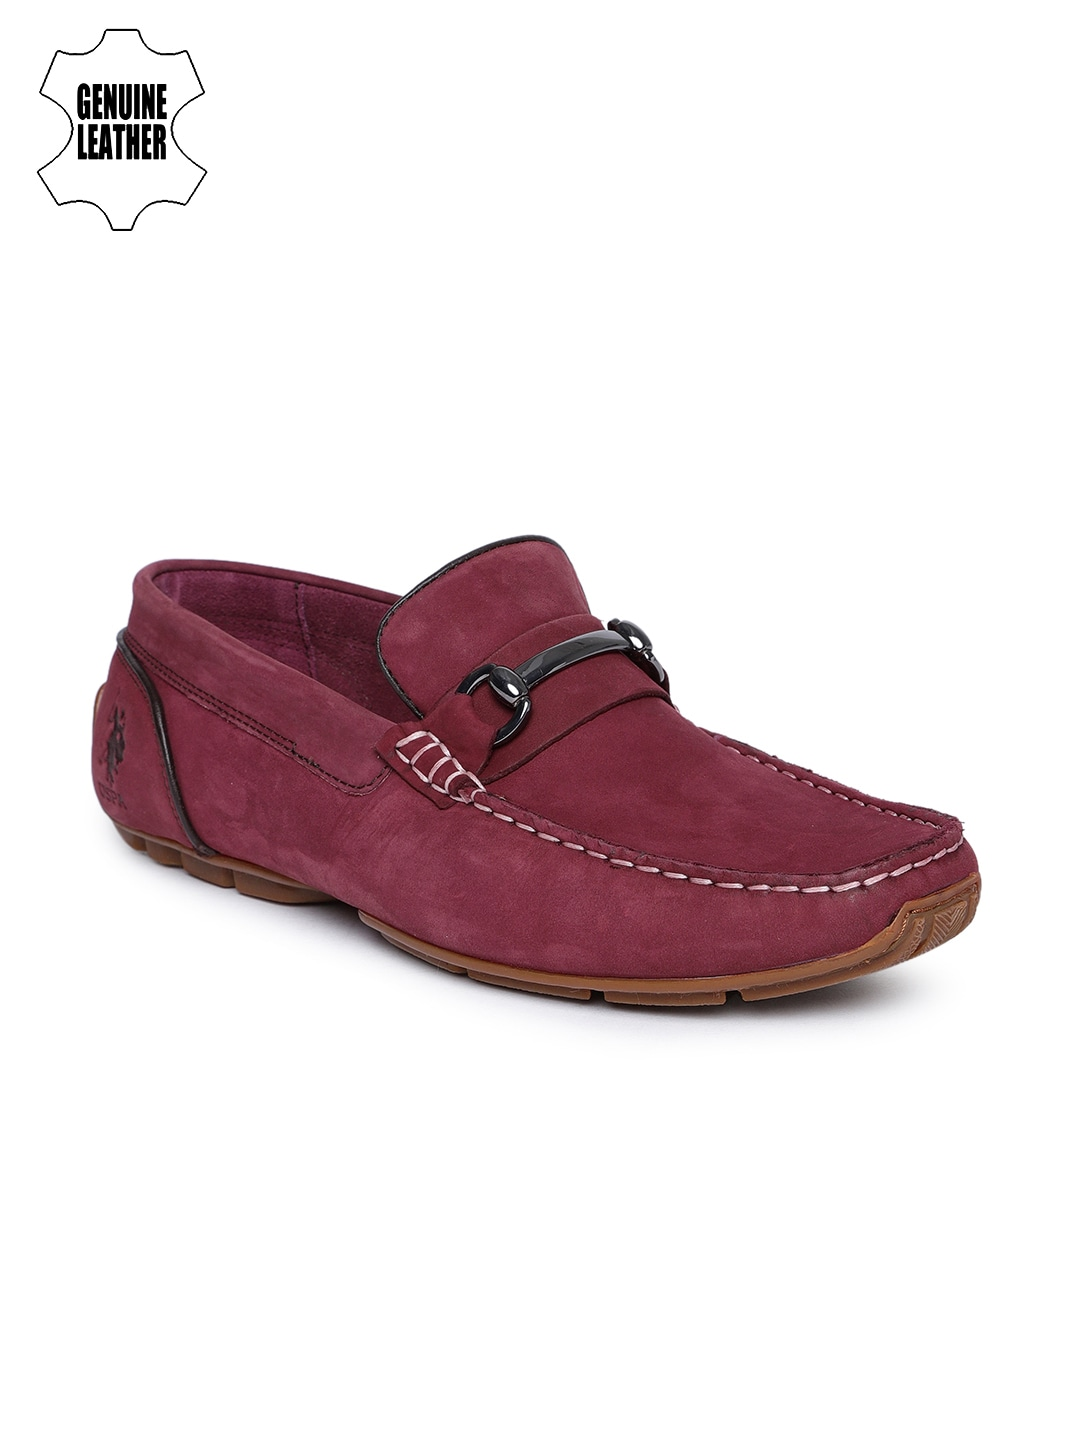 a0dc9763d97 Loafer Shoes - Buy Latest Loafer Shoes For Men